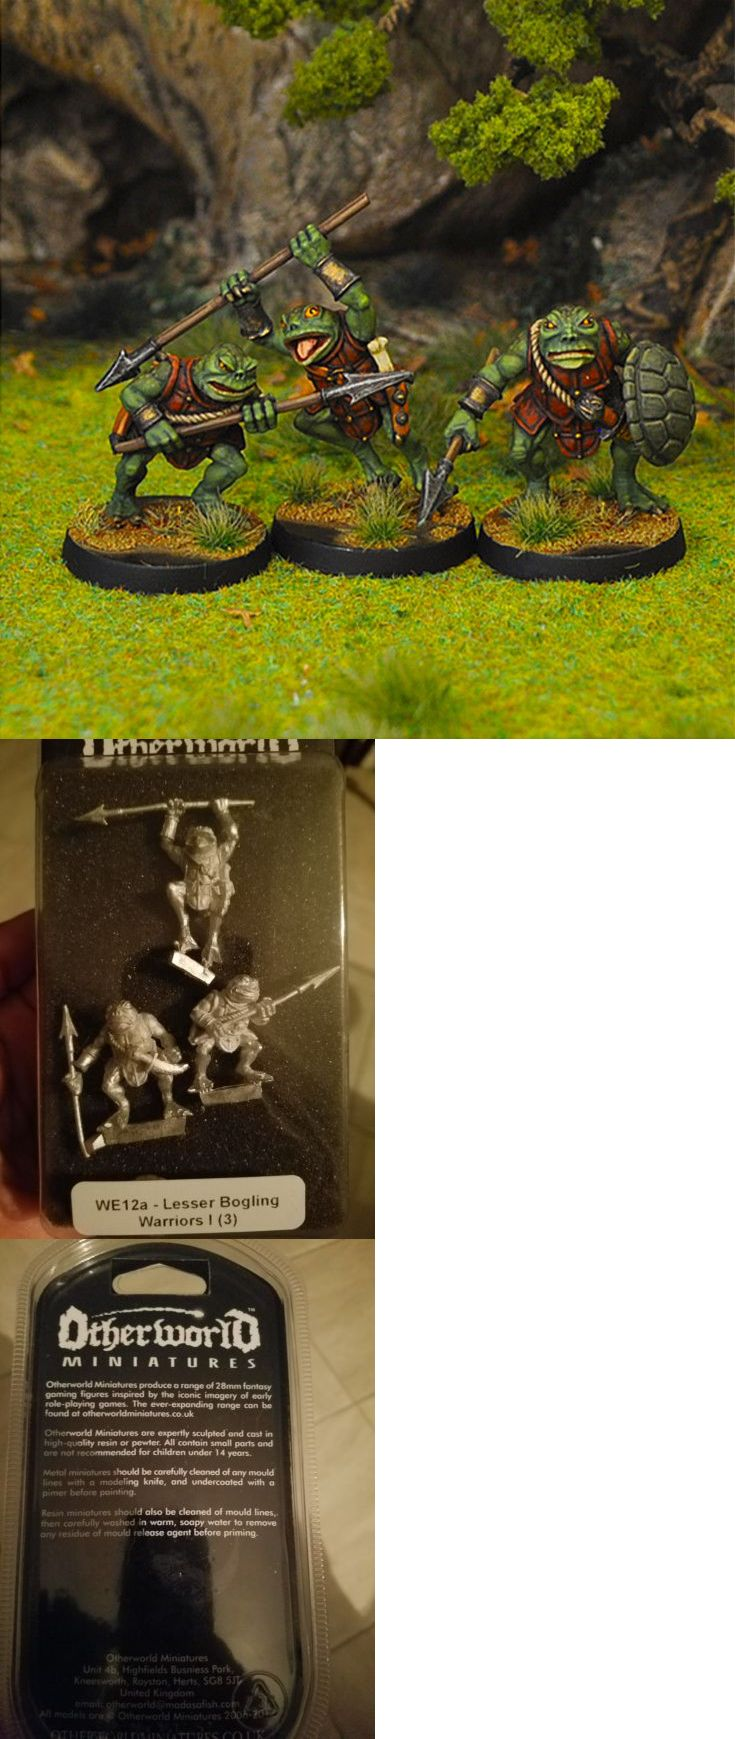 Miniatures 166803: New Dandd Dungeons And Dragons Otherworld